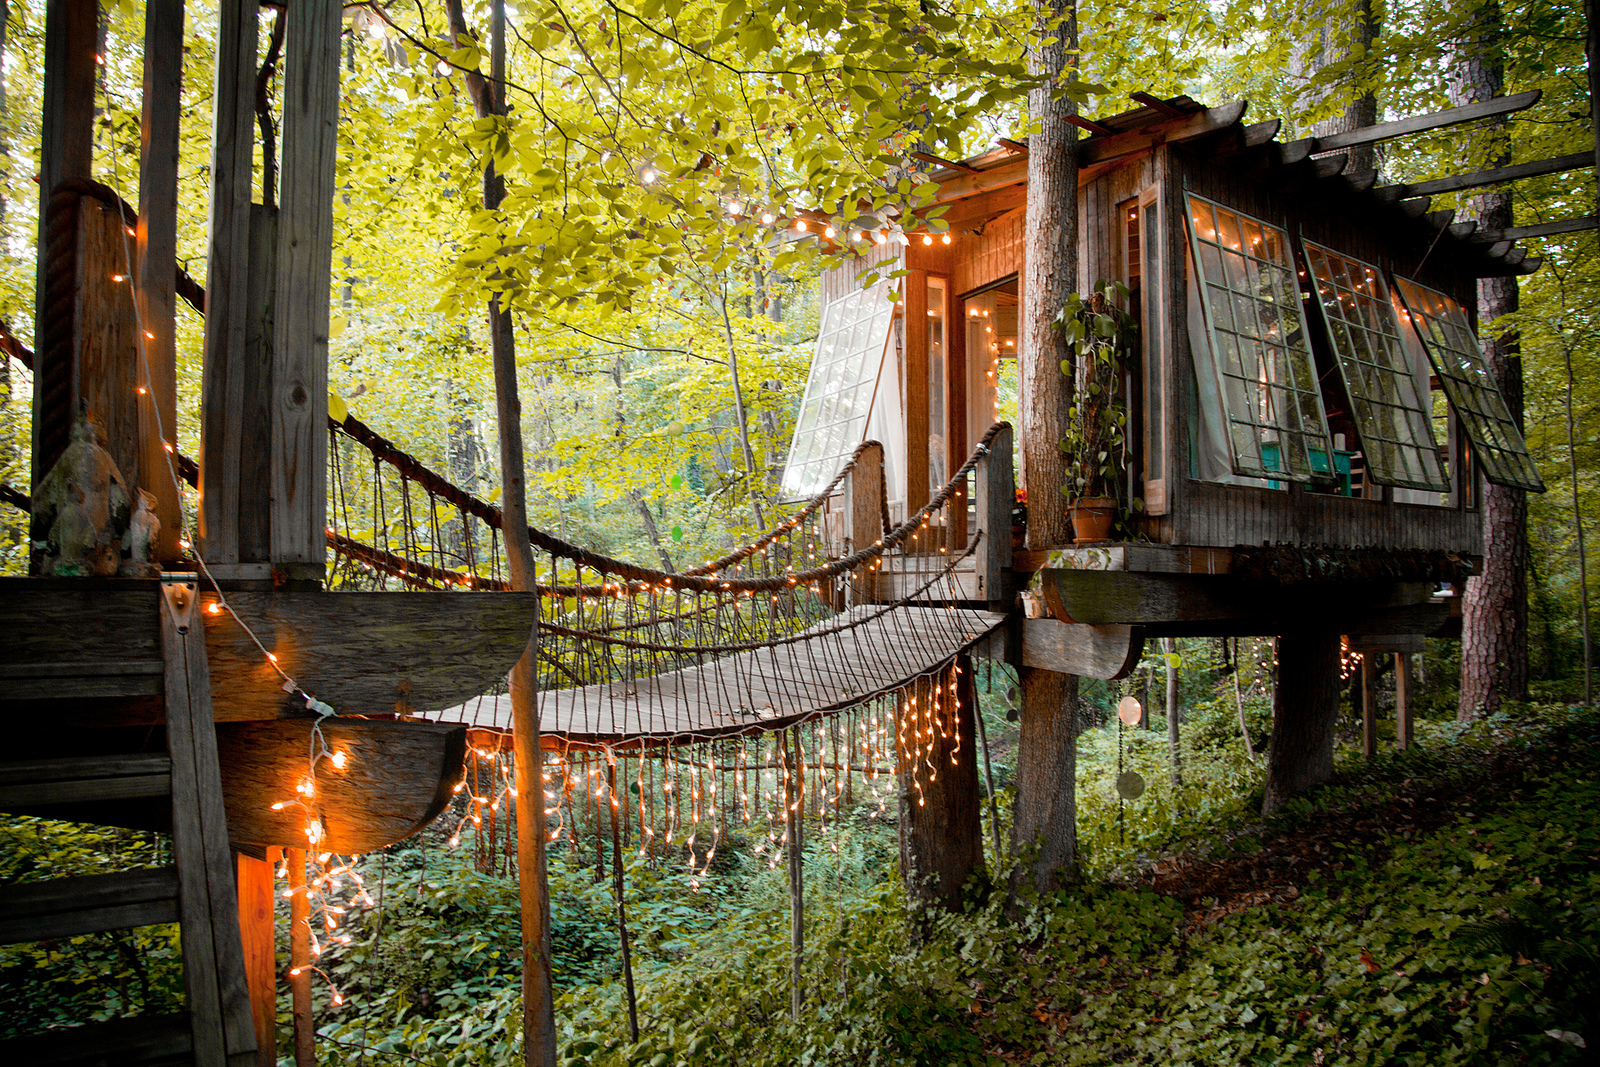 A cabin treehouse designed by Peter Bahouth. You can rent this amazing home in Atlanta on  Airbnb  | photos by  Lindsay Appel  for  My Cool Shed  by Jane Field-Lewis